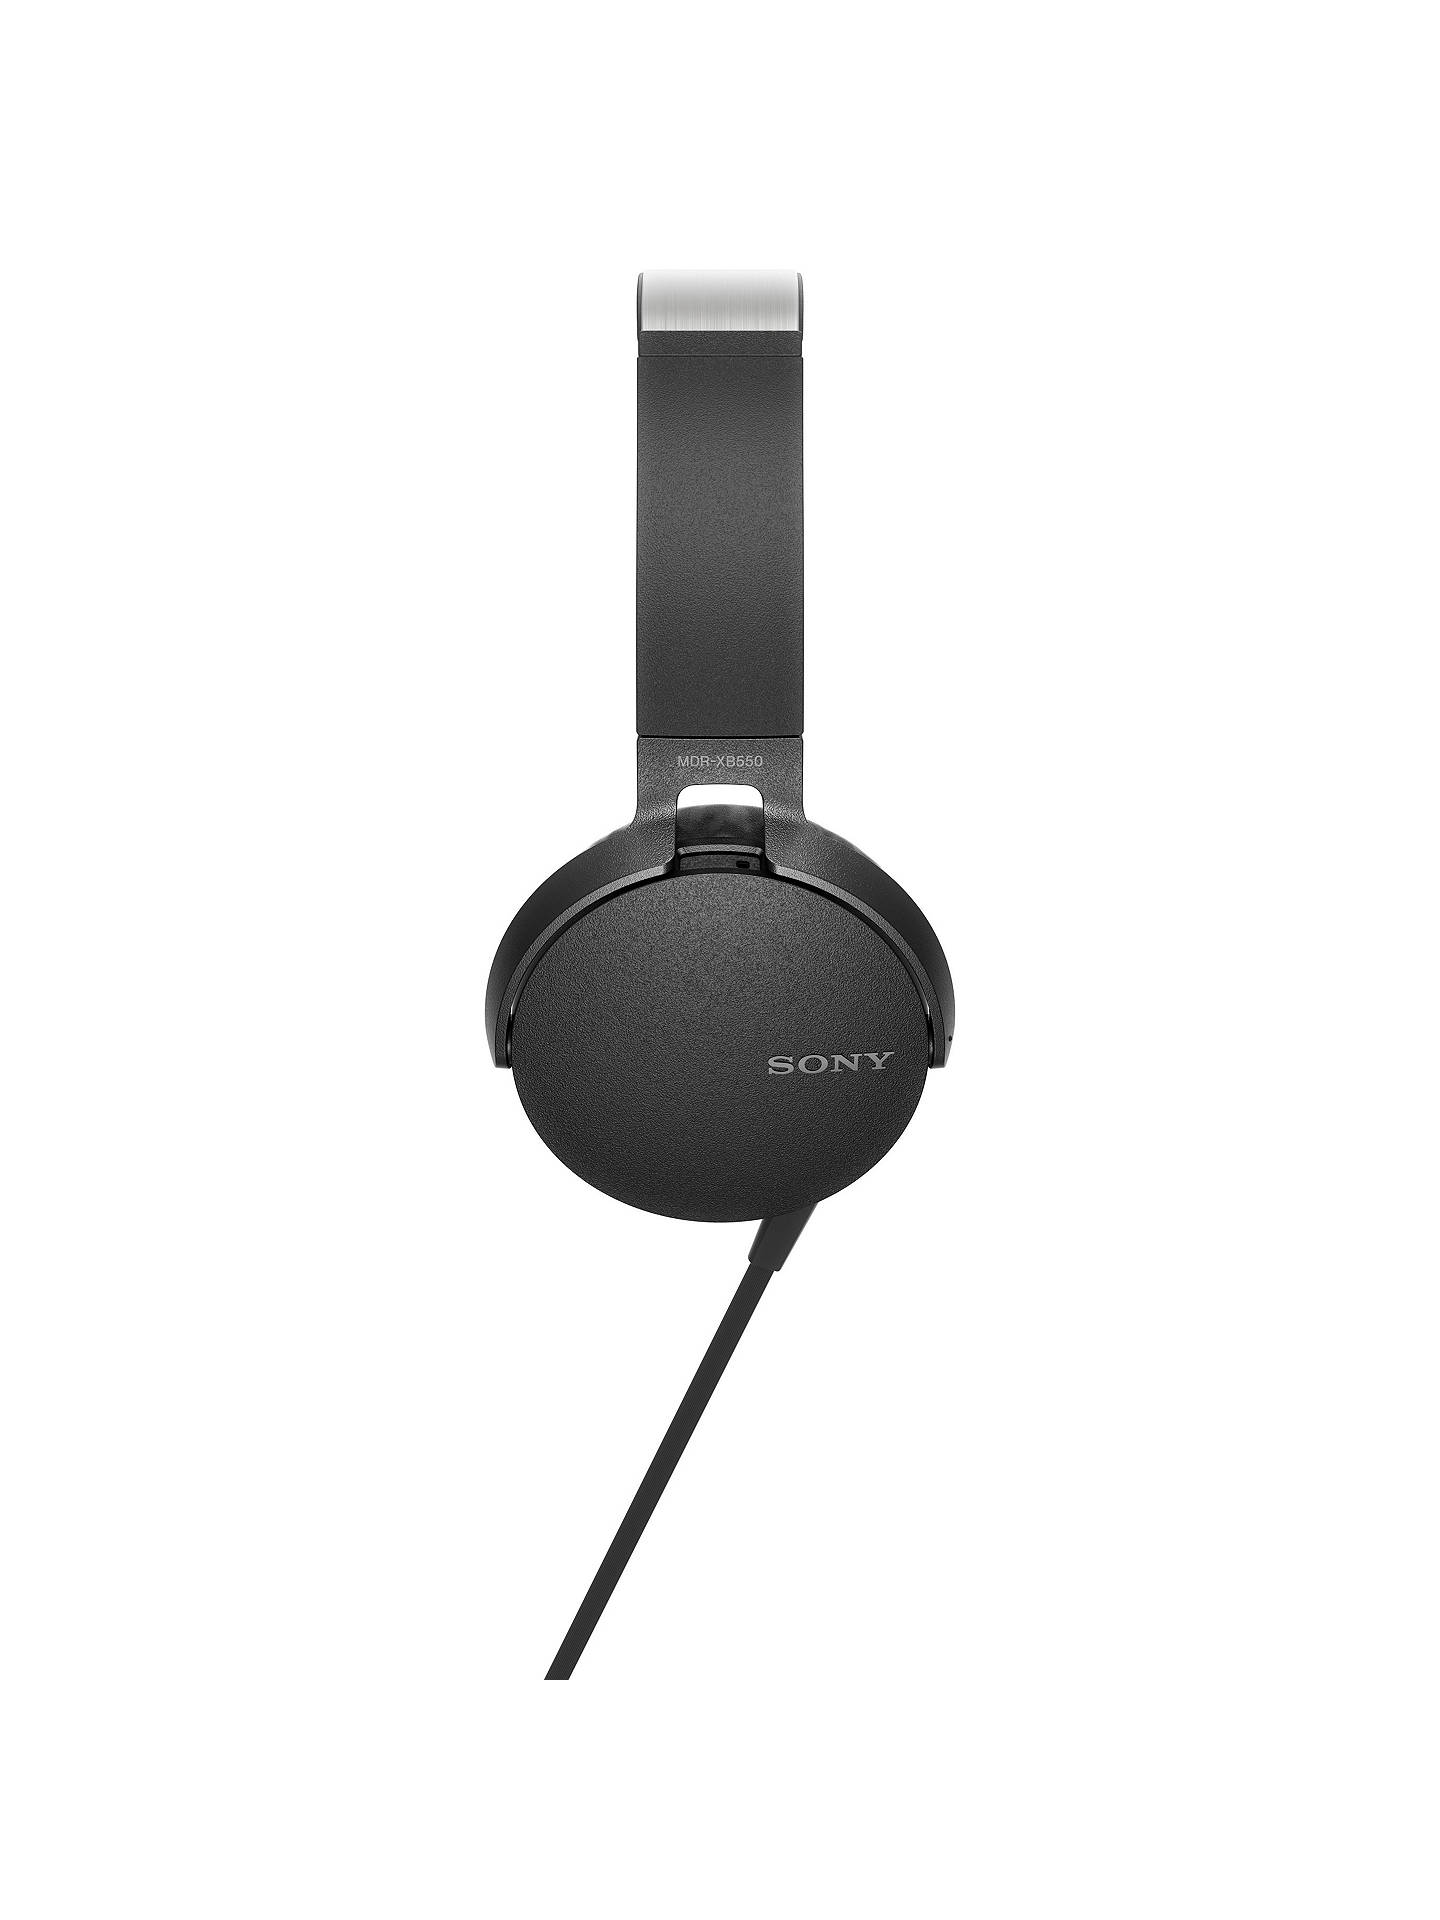 ... BuySony MDR-XB550AP Extra Bass On-Ear Headphones with Mic/Remote, Black ...